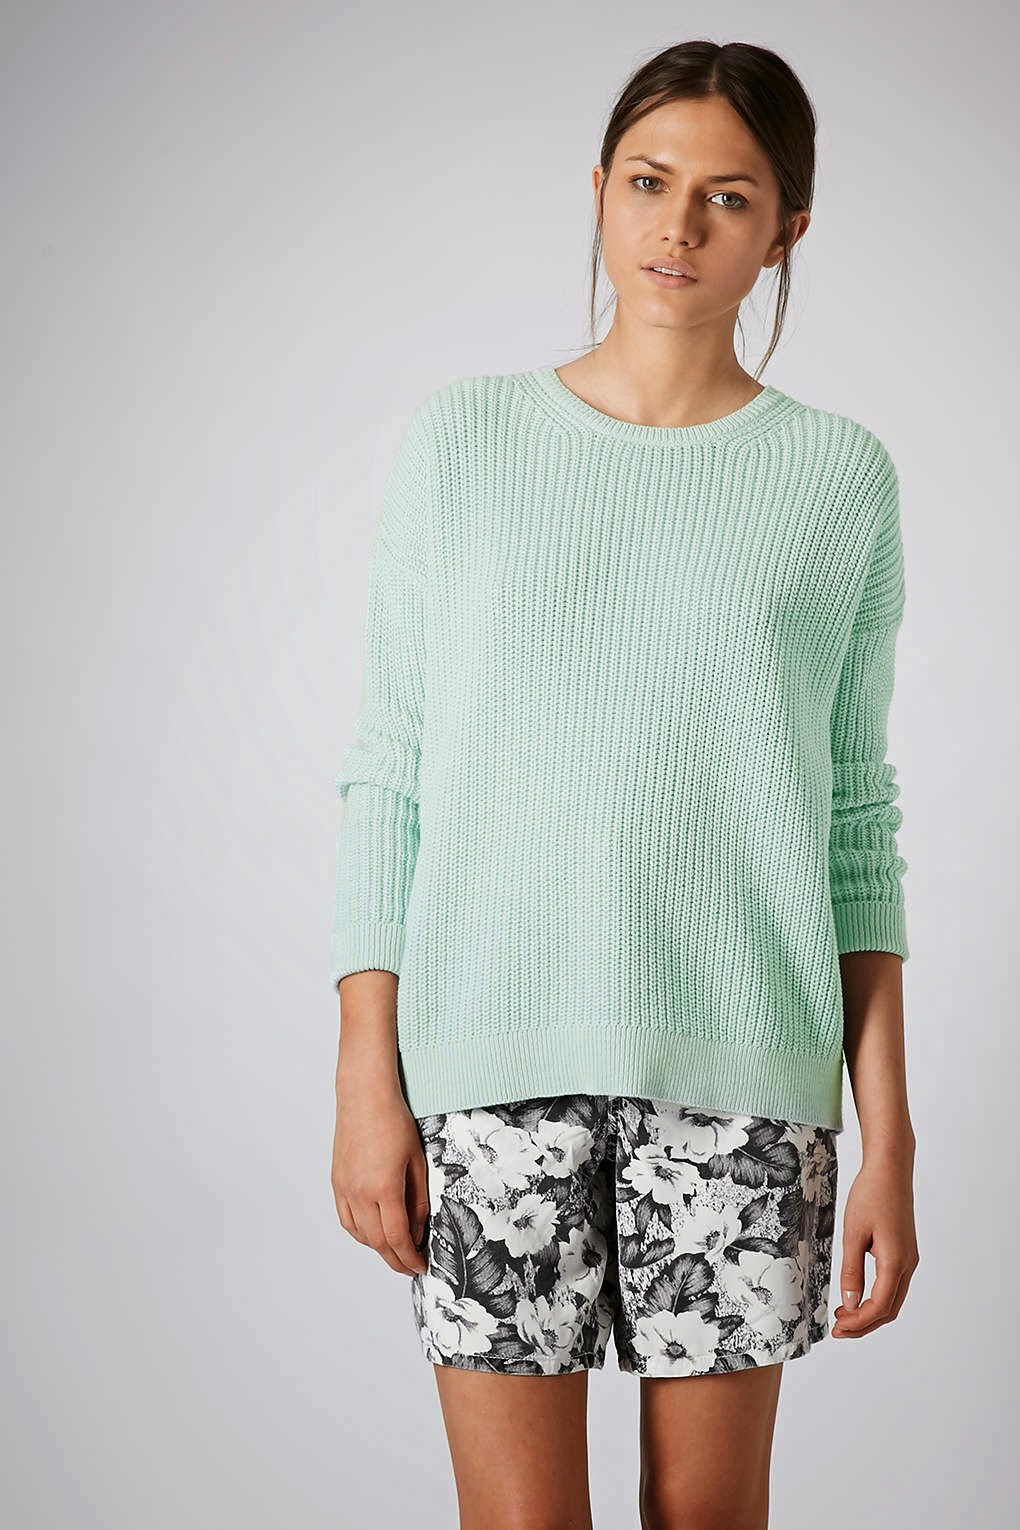 mint green jumper